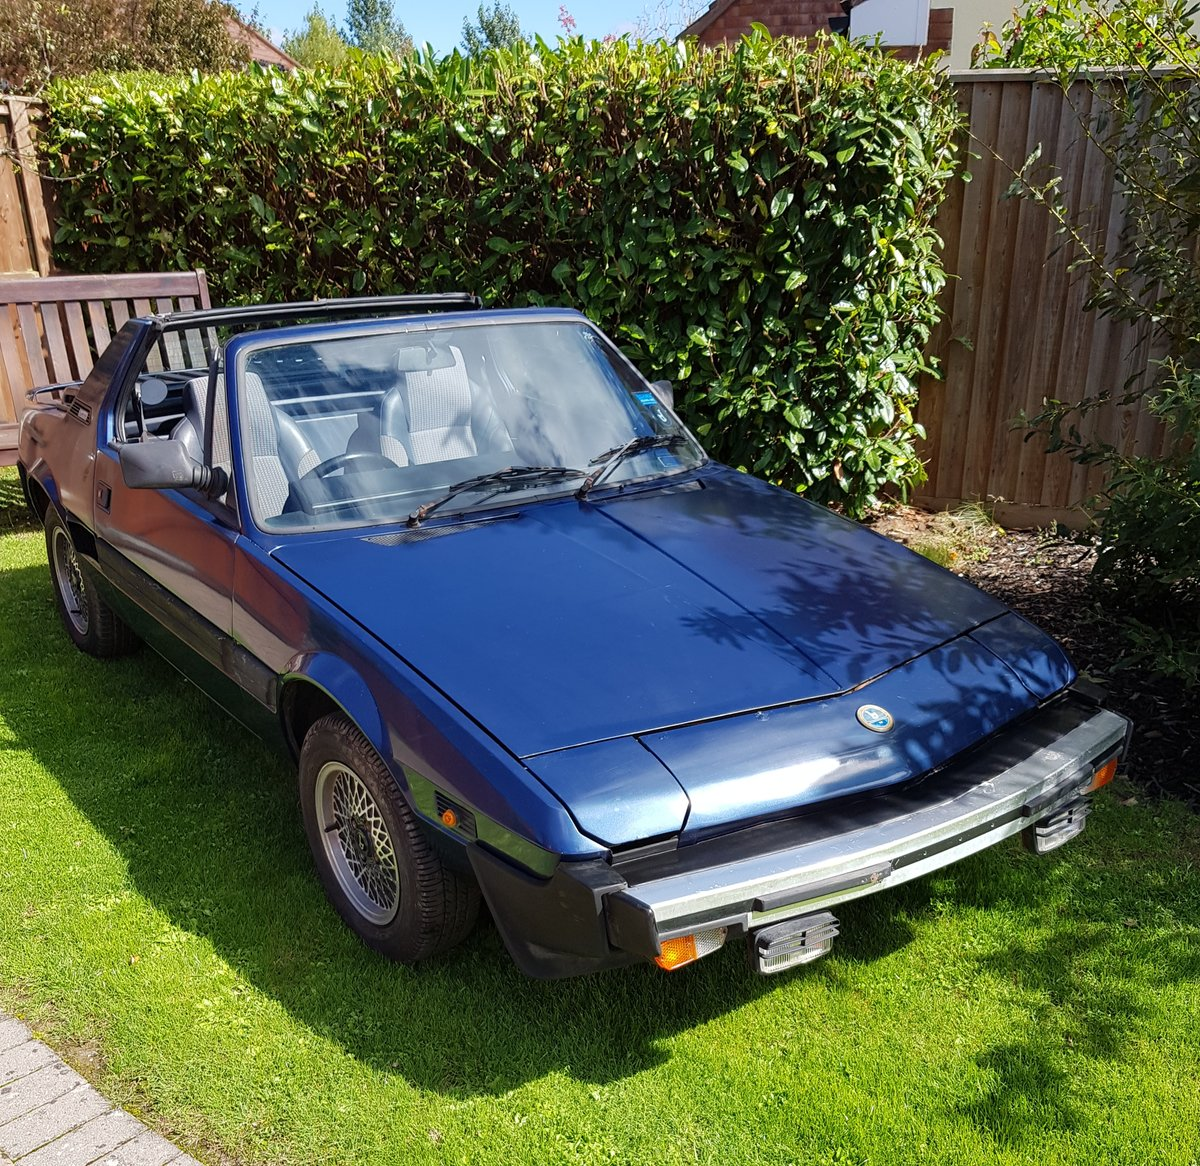 1989 Fiat x19 Bertone Gran Finale *New MOT*  For Sale (picture 1 of 6)